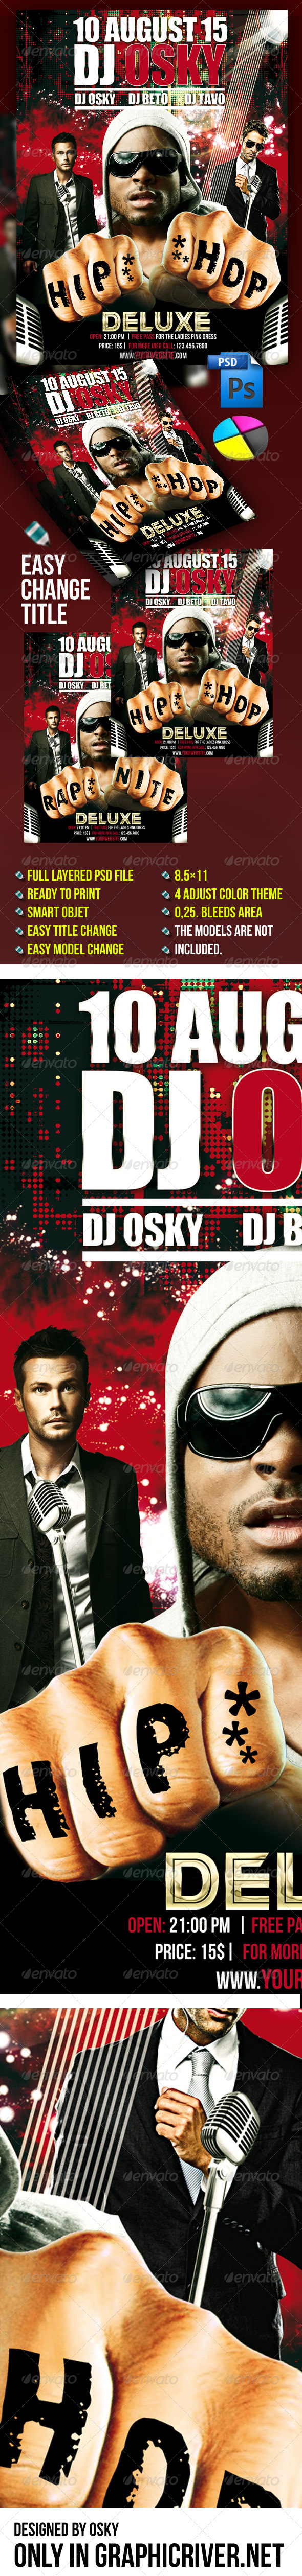 Dj Event Flyer IV - Clubs & Parties Events